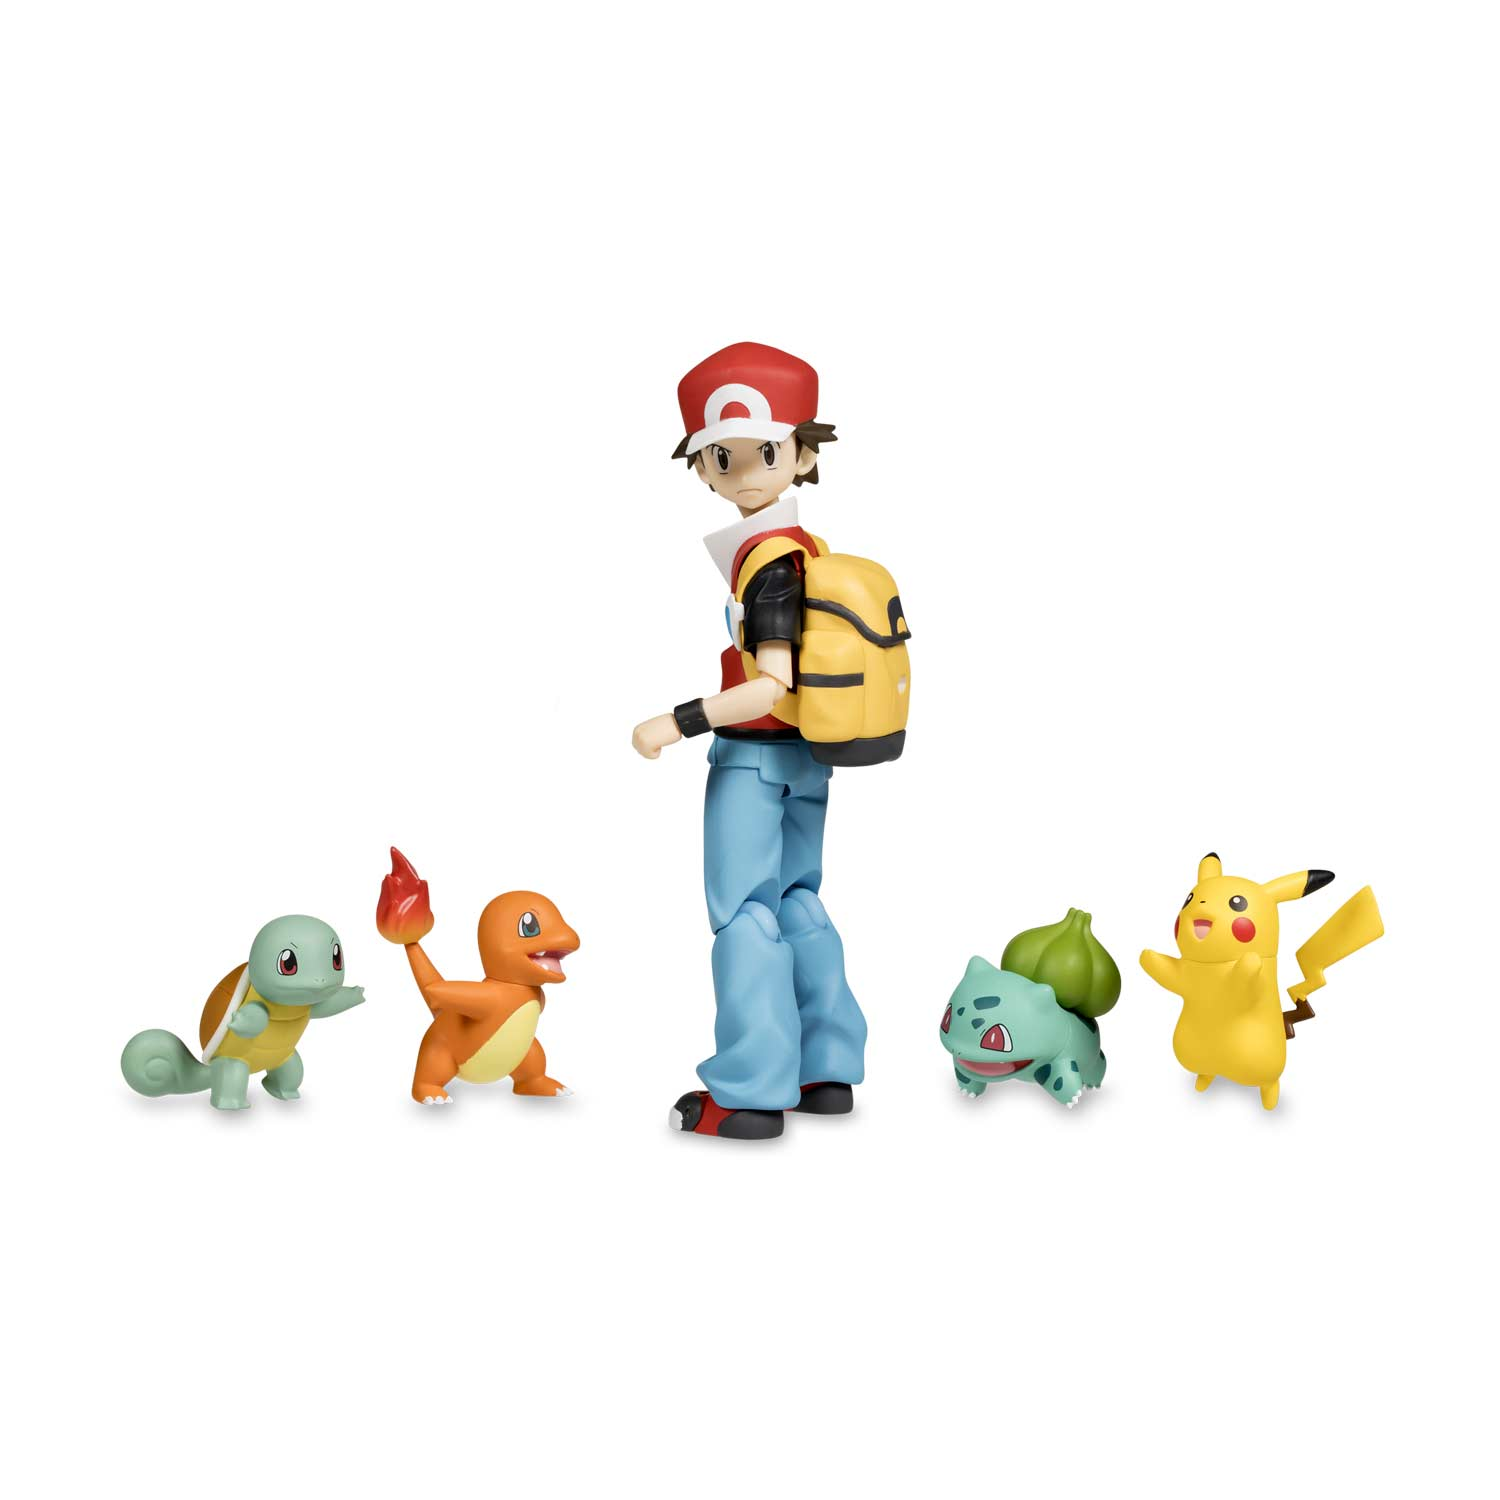 figma red posable figure pokémon centerimage for figma red posable figure with pikachu, bulbasaur, charmander \u0026 squirtle from